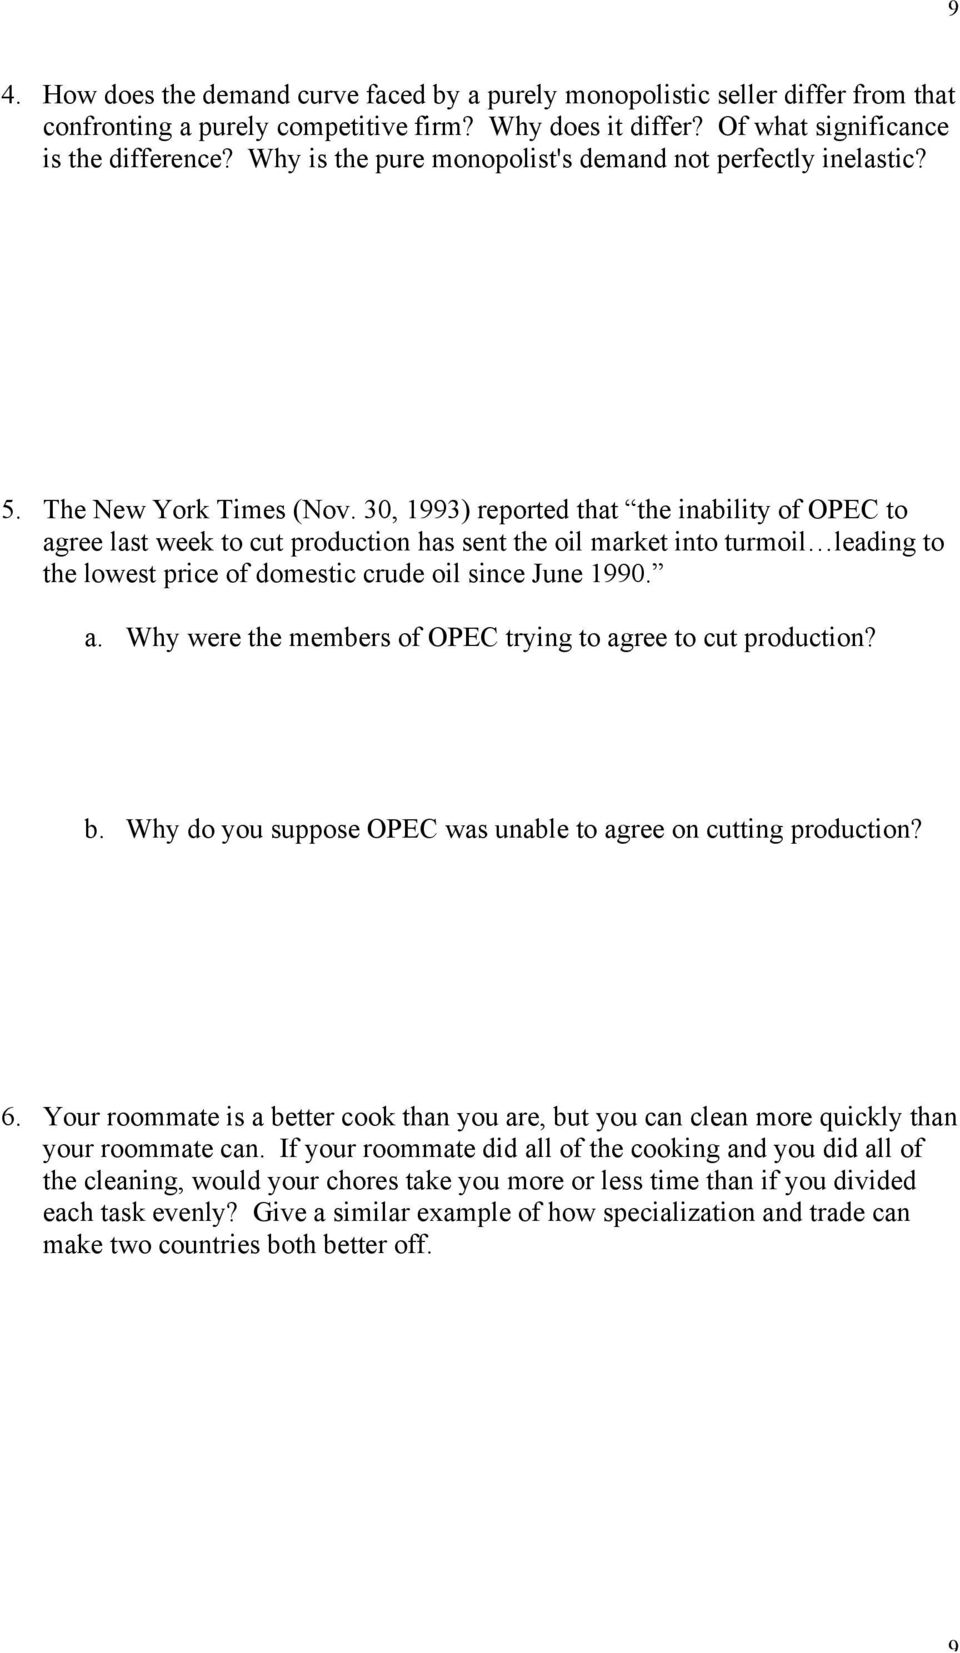 30, 1993) reported that the inability of OPEC to agree last week to cut production has sent the oil market into turmoil leading to the lowest price of domestic crude oil since June 1990. a. Why were the members of OPEC trying to agree to cut production?